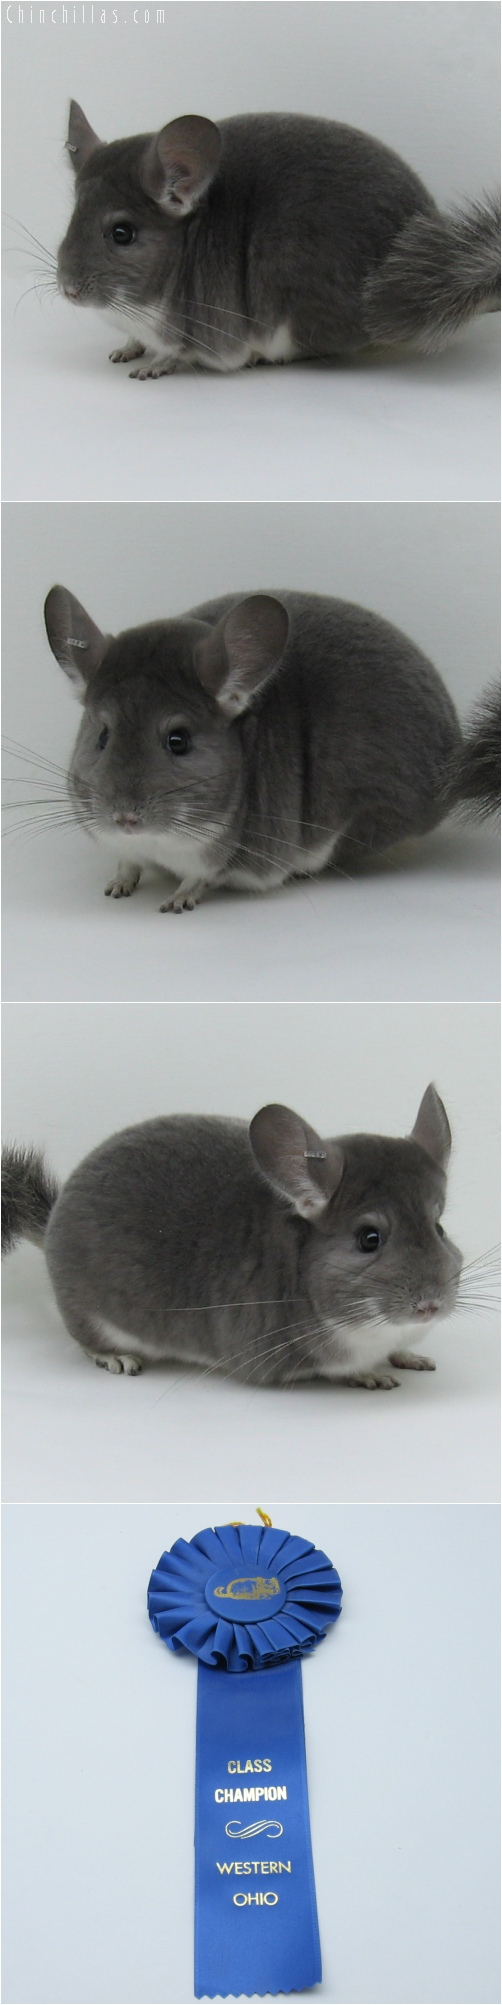 6021 ECBC Class Champion Violet Female Chinchilla